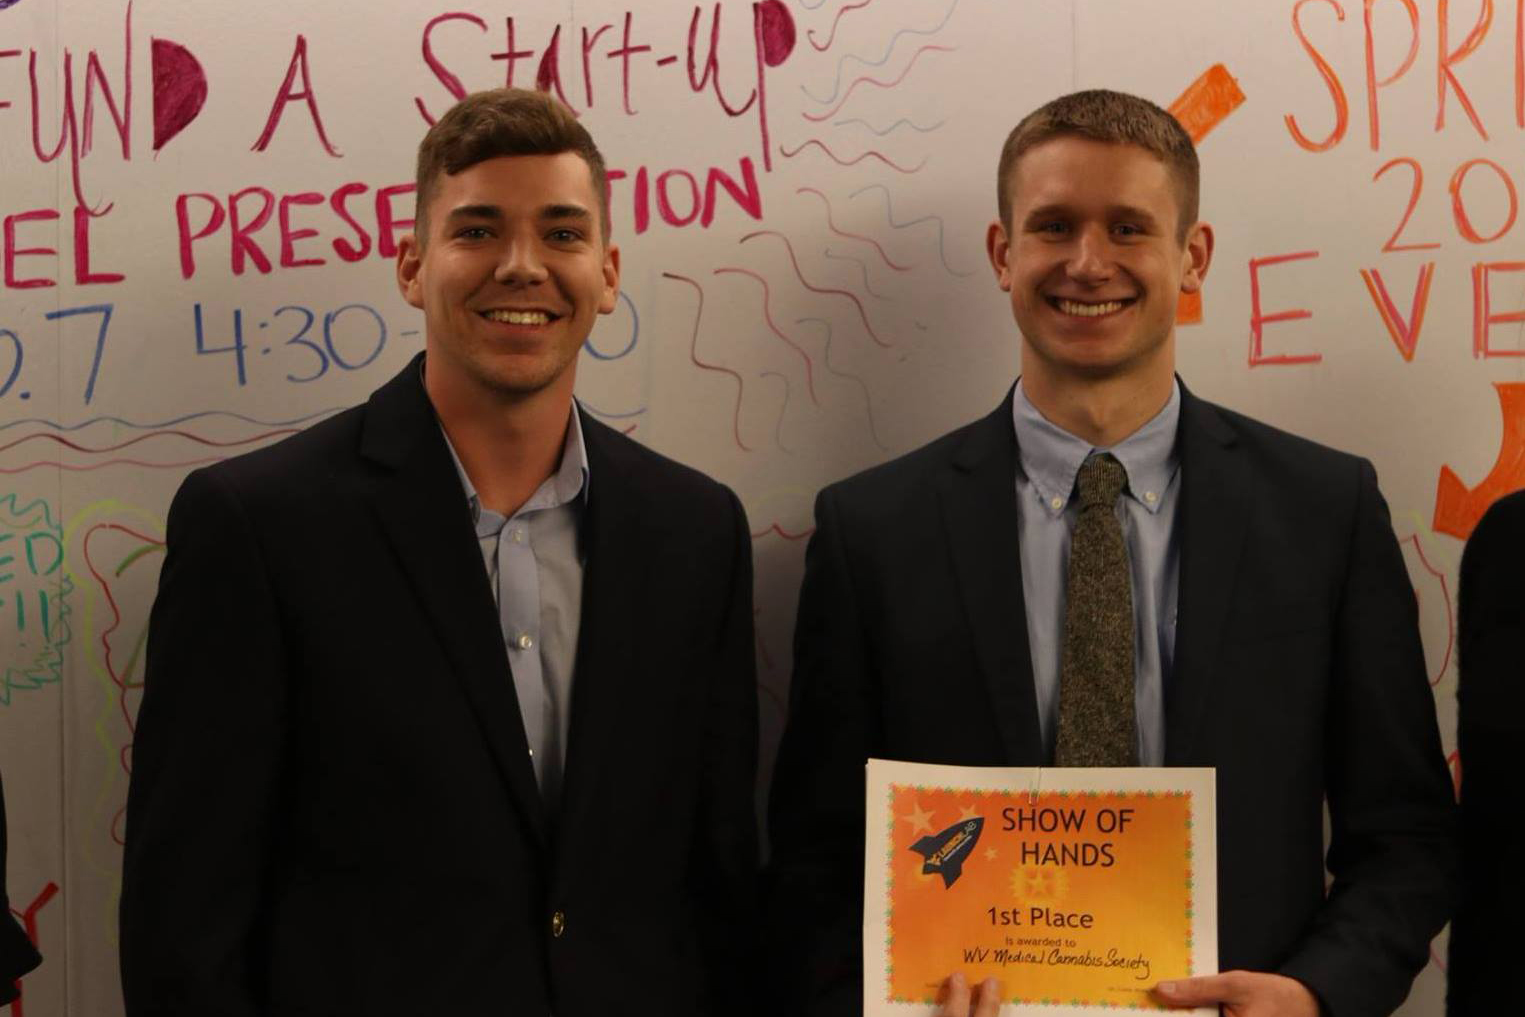 Andrew Wilson and Johnny McFadden are winers of the WVU LaunchLab Show of Hands pitch competition